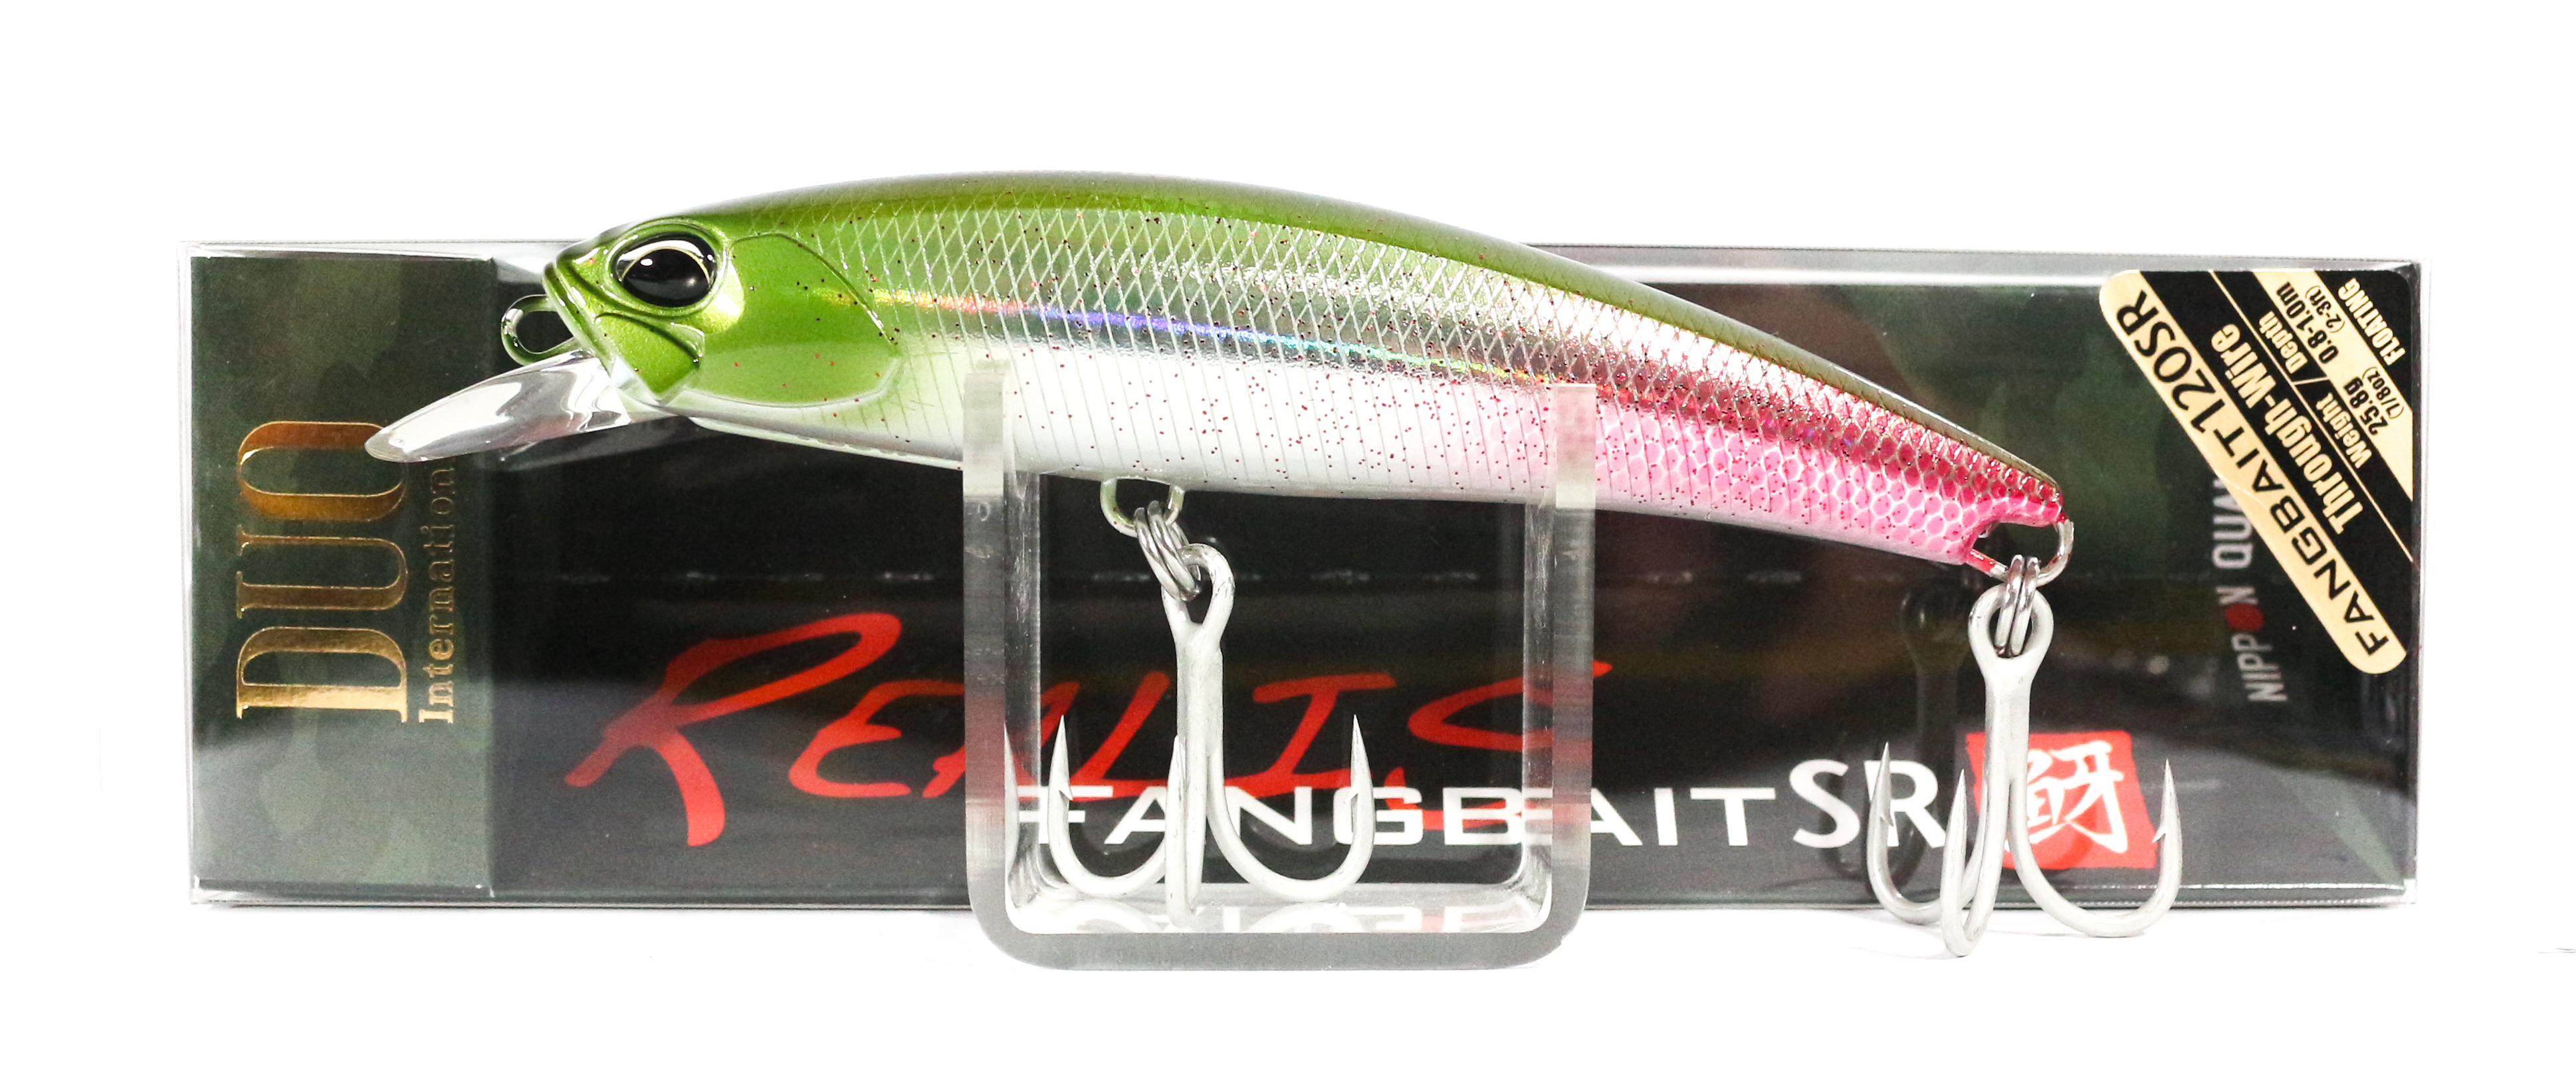 Duo Realis Fangbait 120SR Floating Lure AFA3333 (2277)